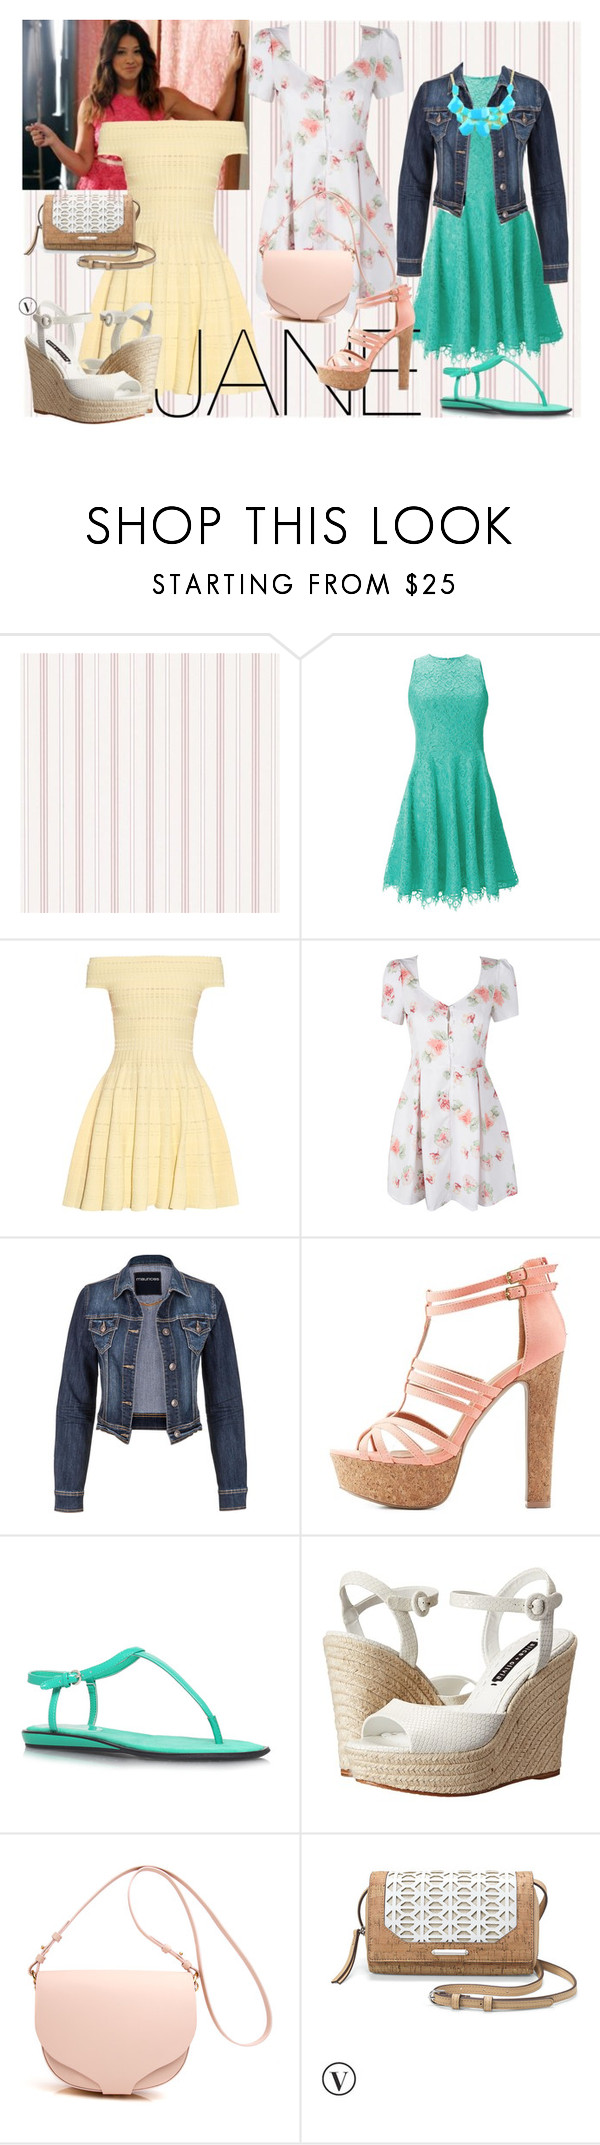 """""""Jane Villanueva from Jane The Virgin"""" by statementsinbasements ❤ liked on Polyvore featuring Shoshanna, Alexander McQueen, maurices, Charlotte Russe, Nine West, Alice + Olivia, Stella & Dot and Emi Jewellery"""